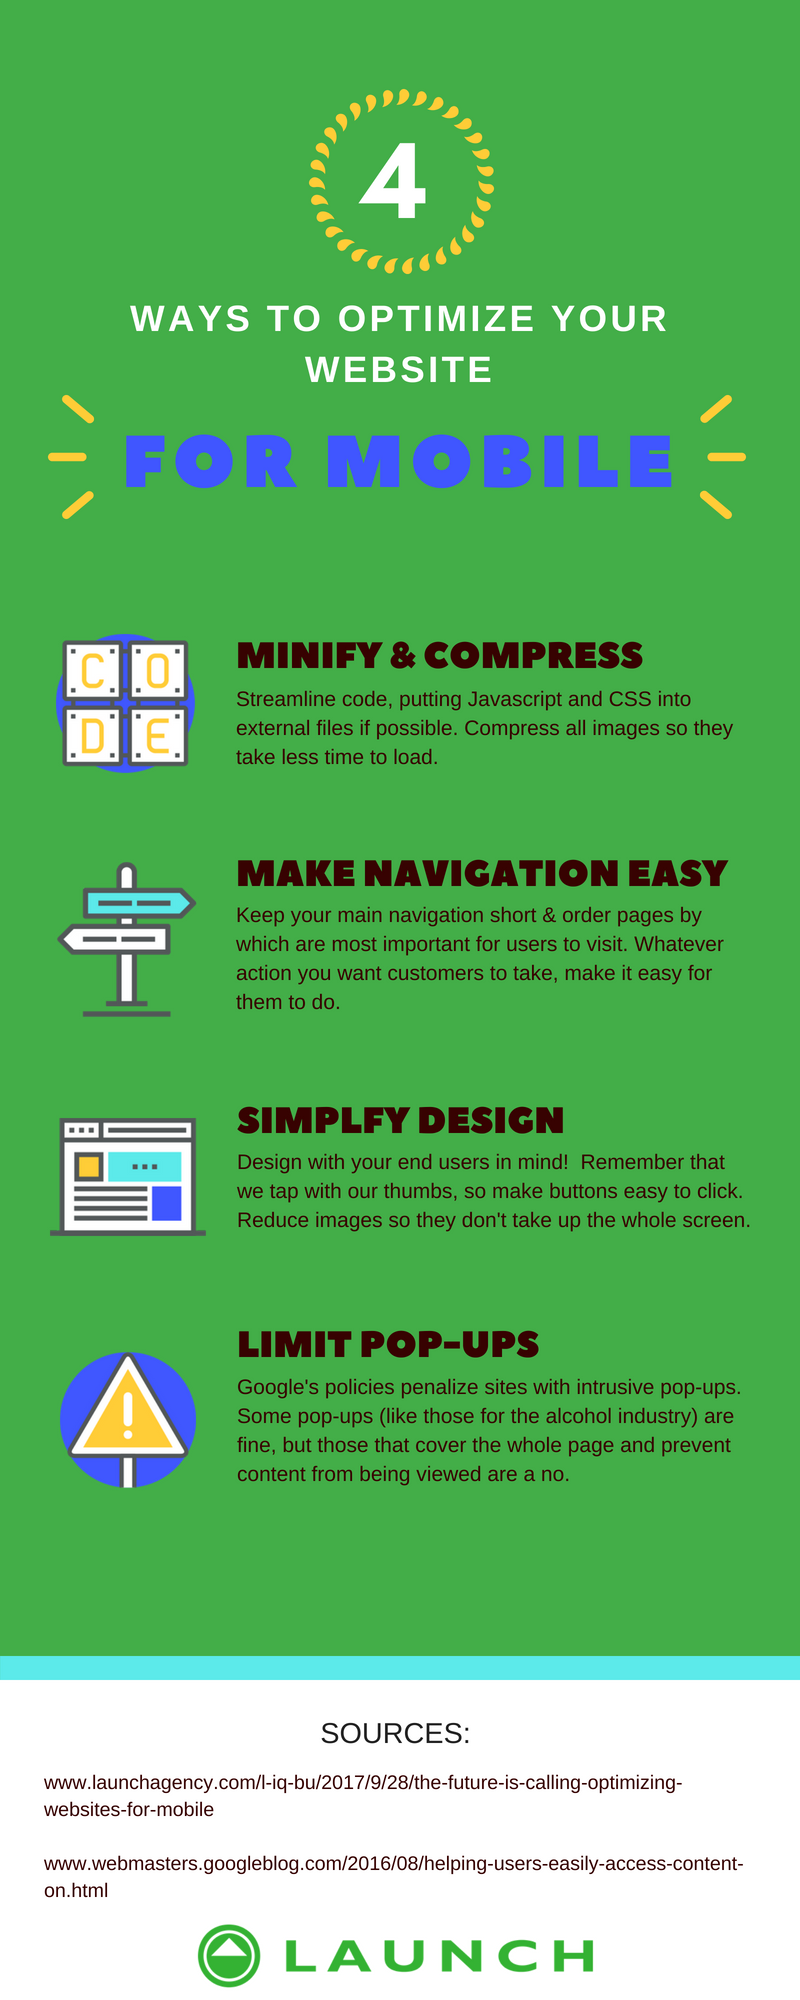 optimize-websites-for-mobile-infographic